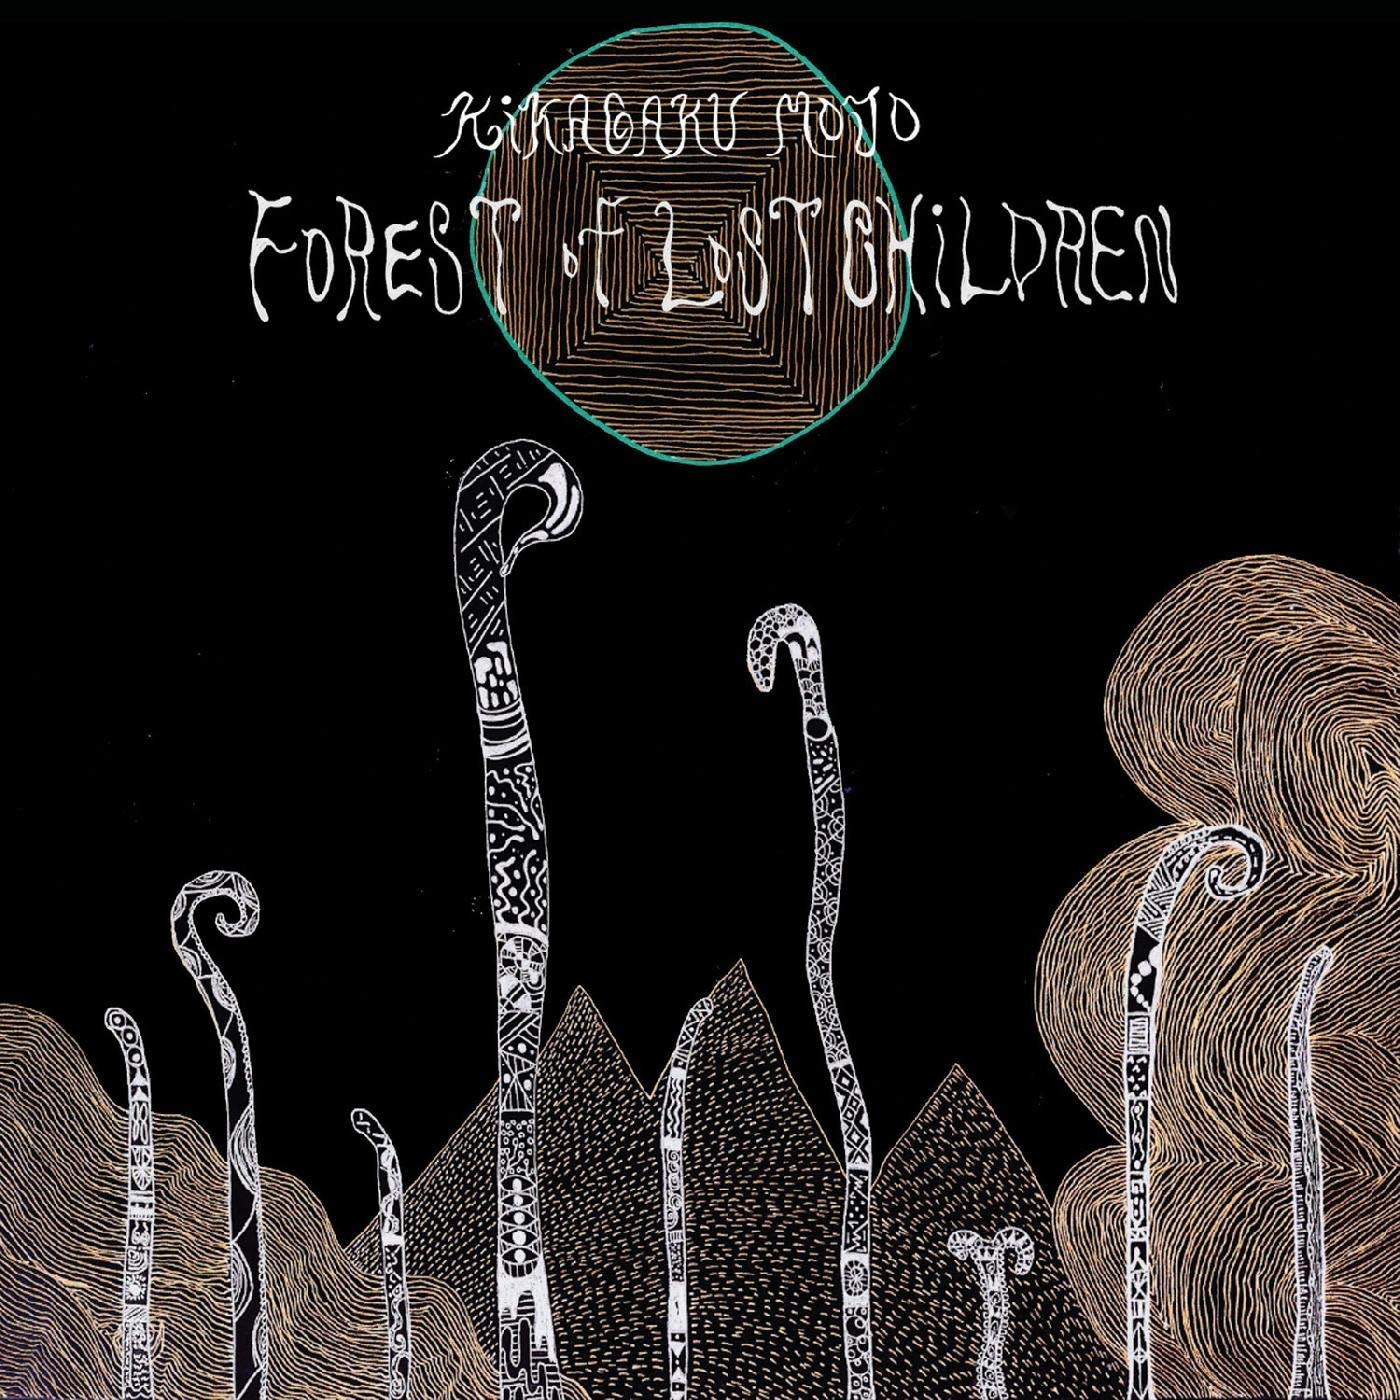 Kikagaku Moyo - Forest Of Lost Children [LP] (Clear Vinyl)